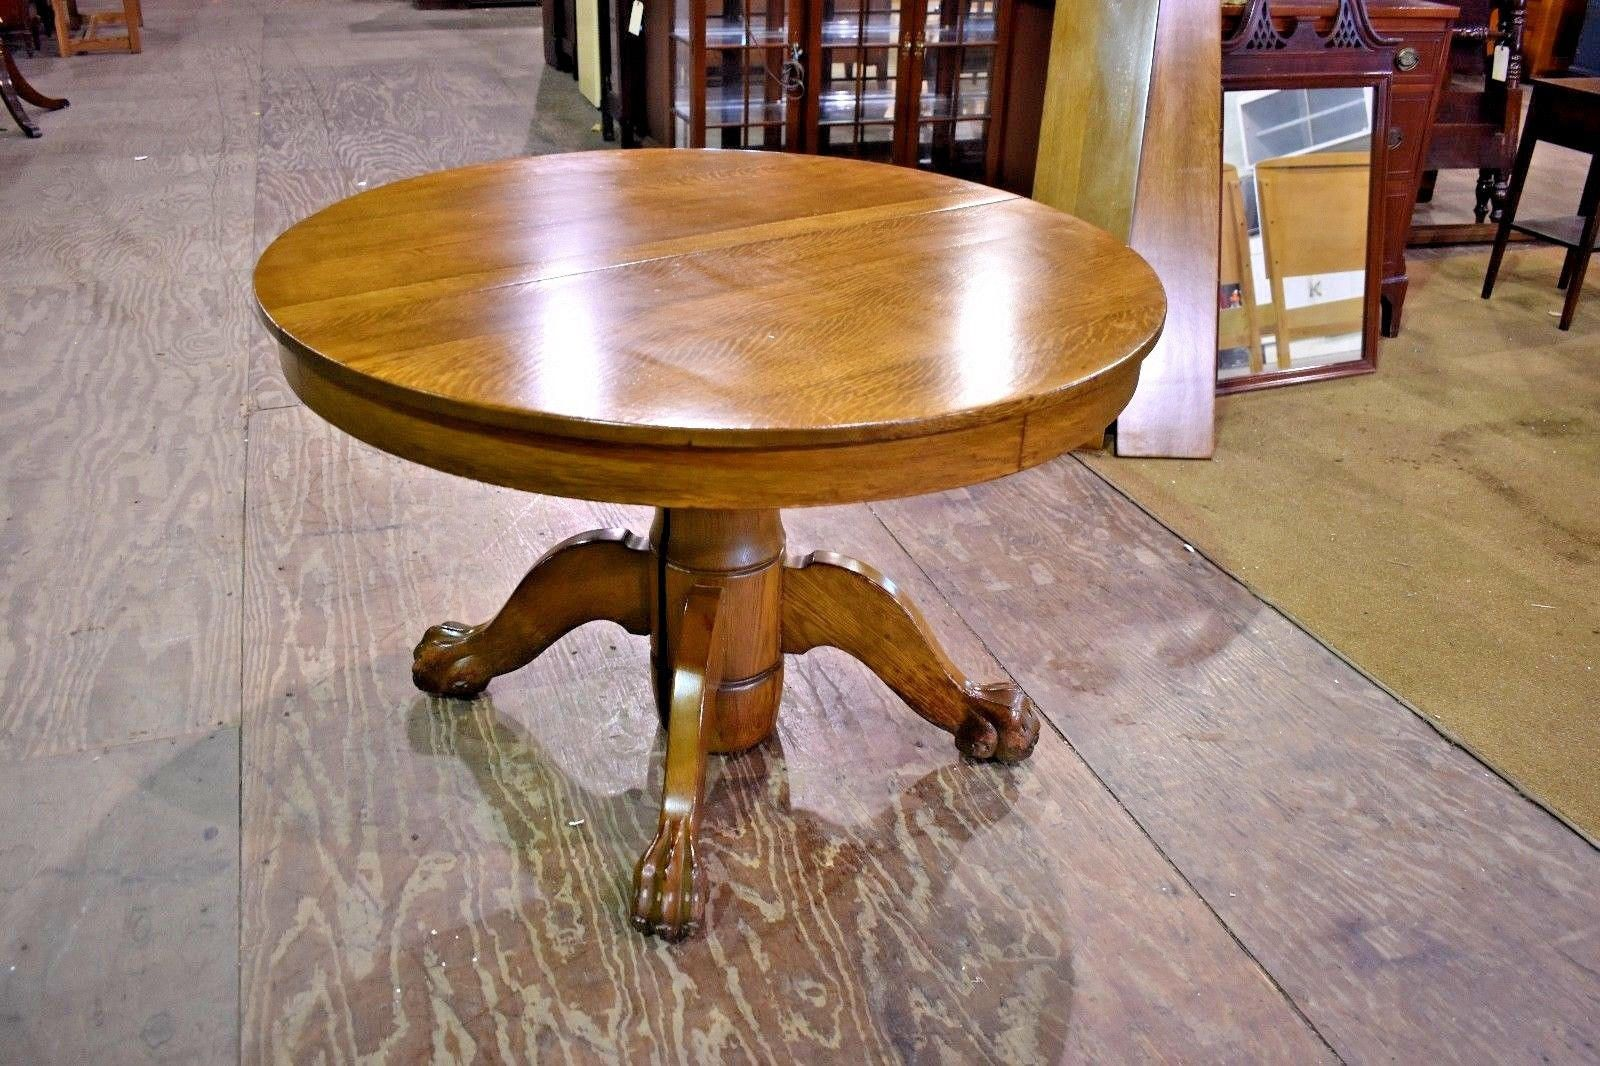 Antique Round Tiger Stripe Quarter Sawn Oak Dining Table With Paw